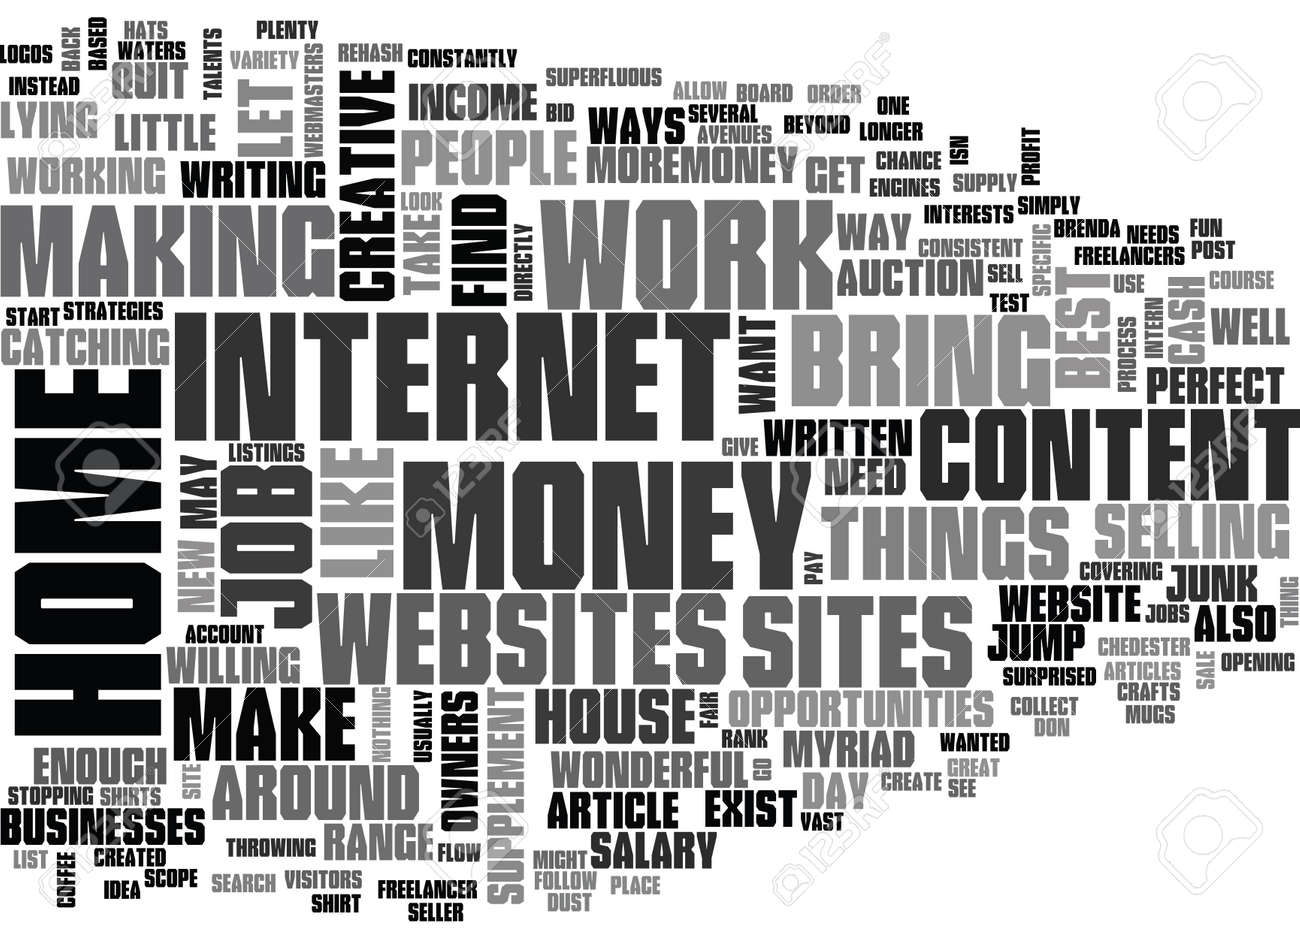 WORK AT HOME FOR FUN AND PROFIT TEXT WORD CLOUD CONCEPT